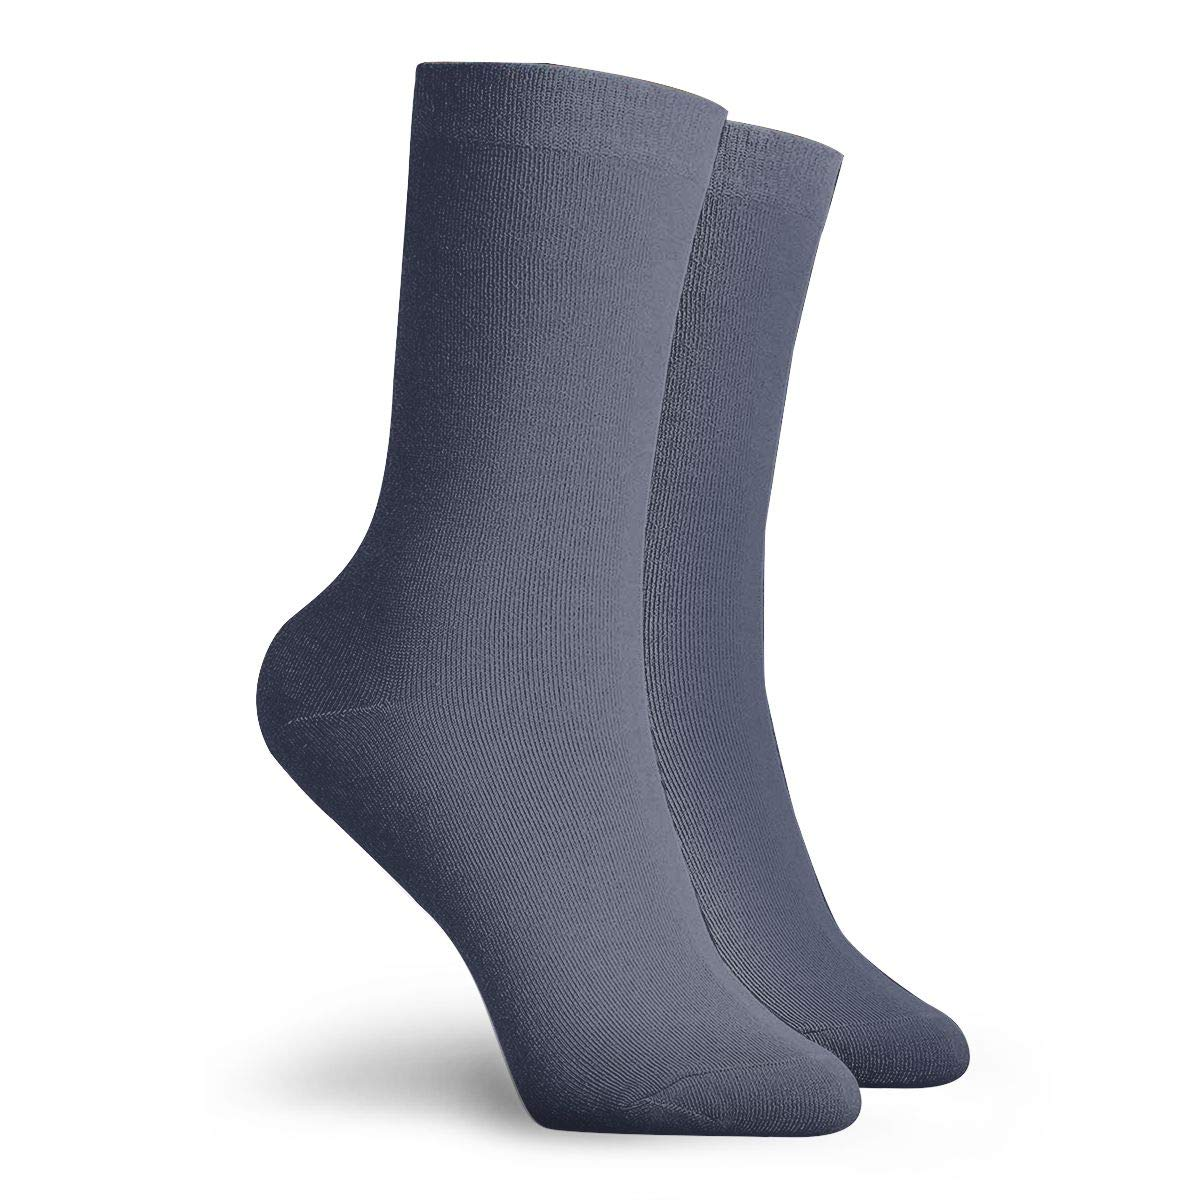 Color Navy Blue Unisex Funny Casual Crew Socks Athletic Socks For Boys Girls Kids Teenagers